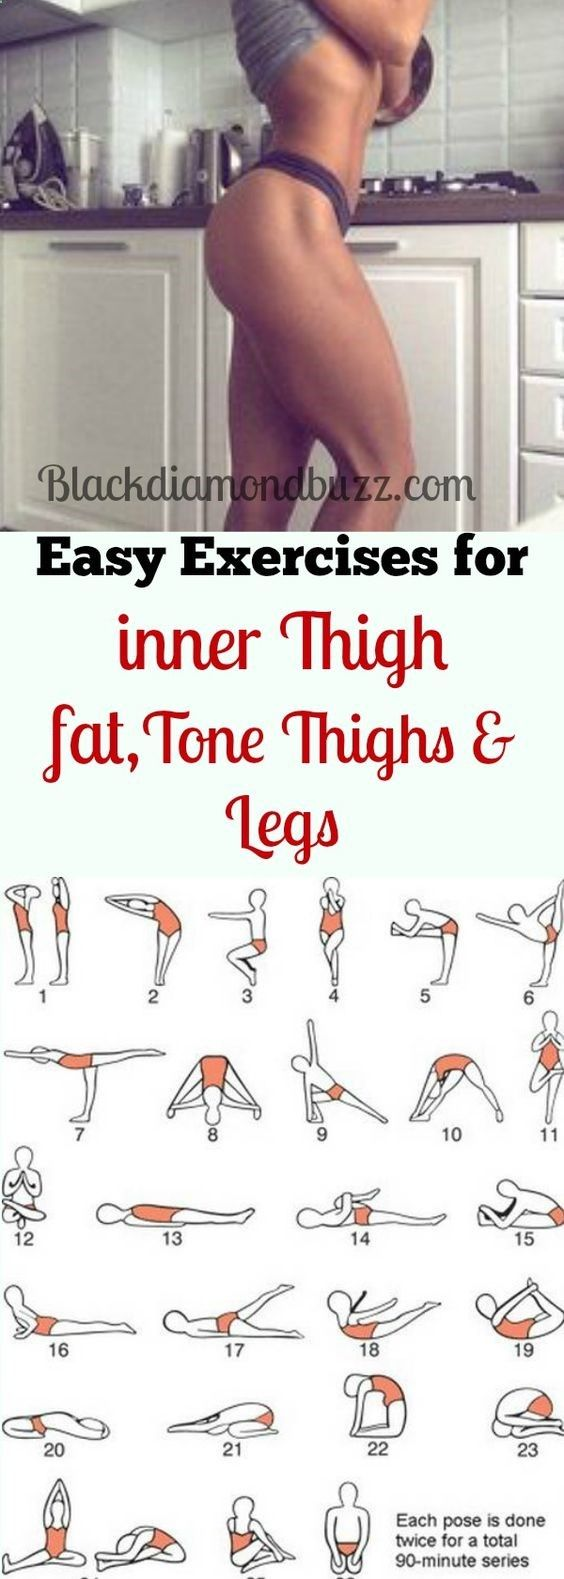 Best simple exercises to lose inner thighs fat and burn belly fat; tone thighs, legs and slimming waistline fast. It will not take more than 10 minutes for each workout every day and you are guarantee (More Minutes) burn fat remedies